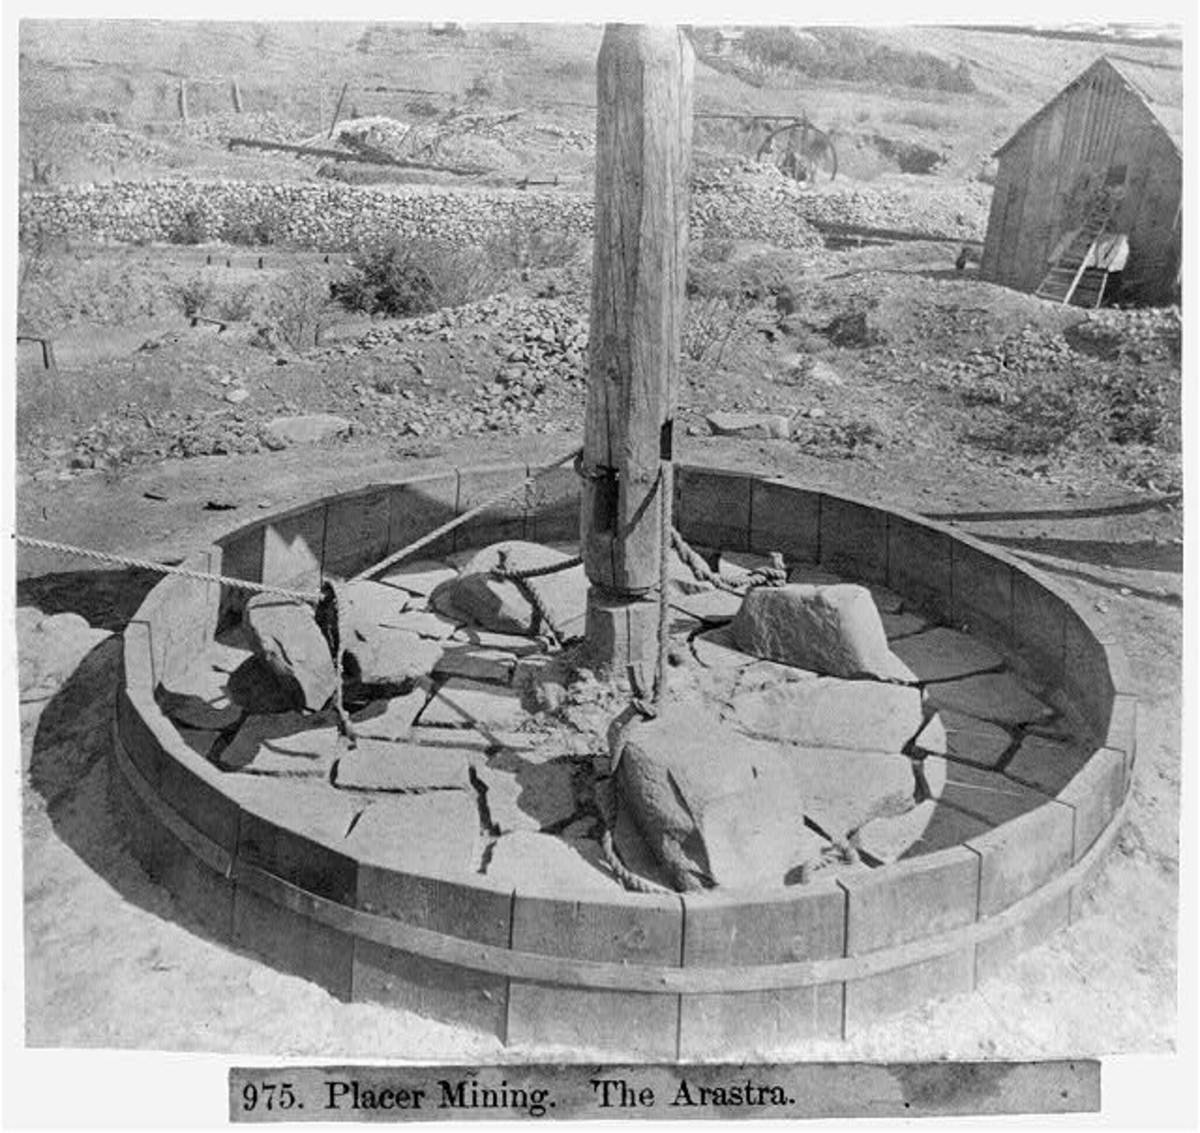 In general, outside of the circle was a large wheel carved from rock that rolled around and around crushing gold ore.